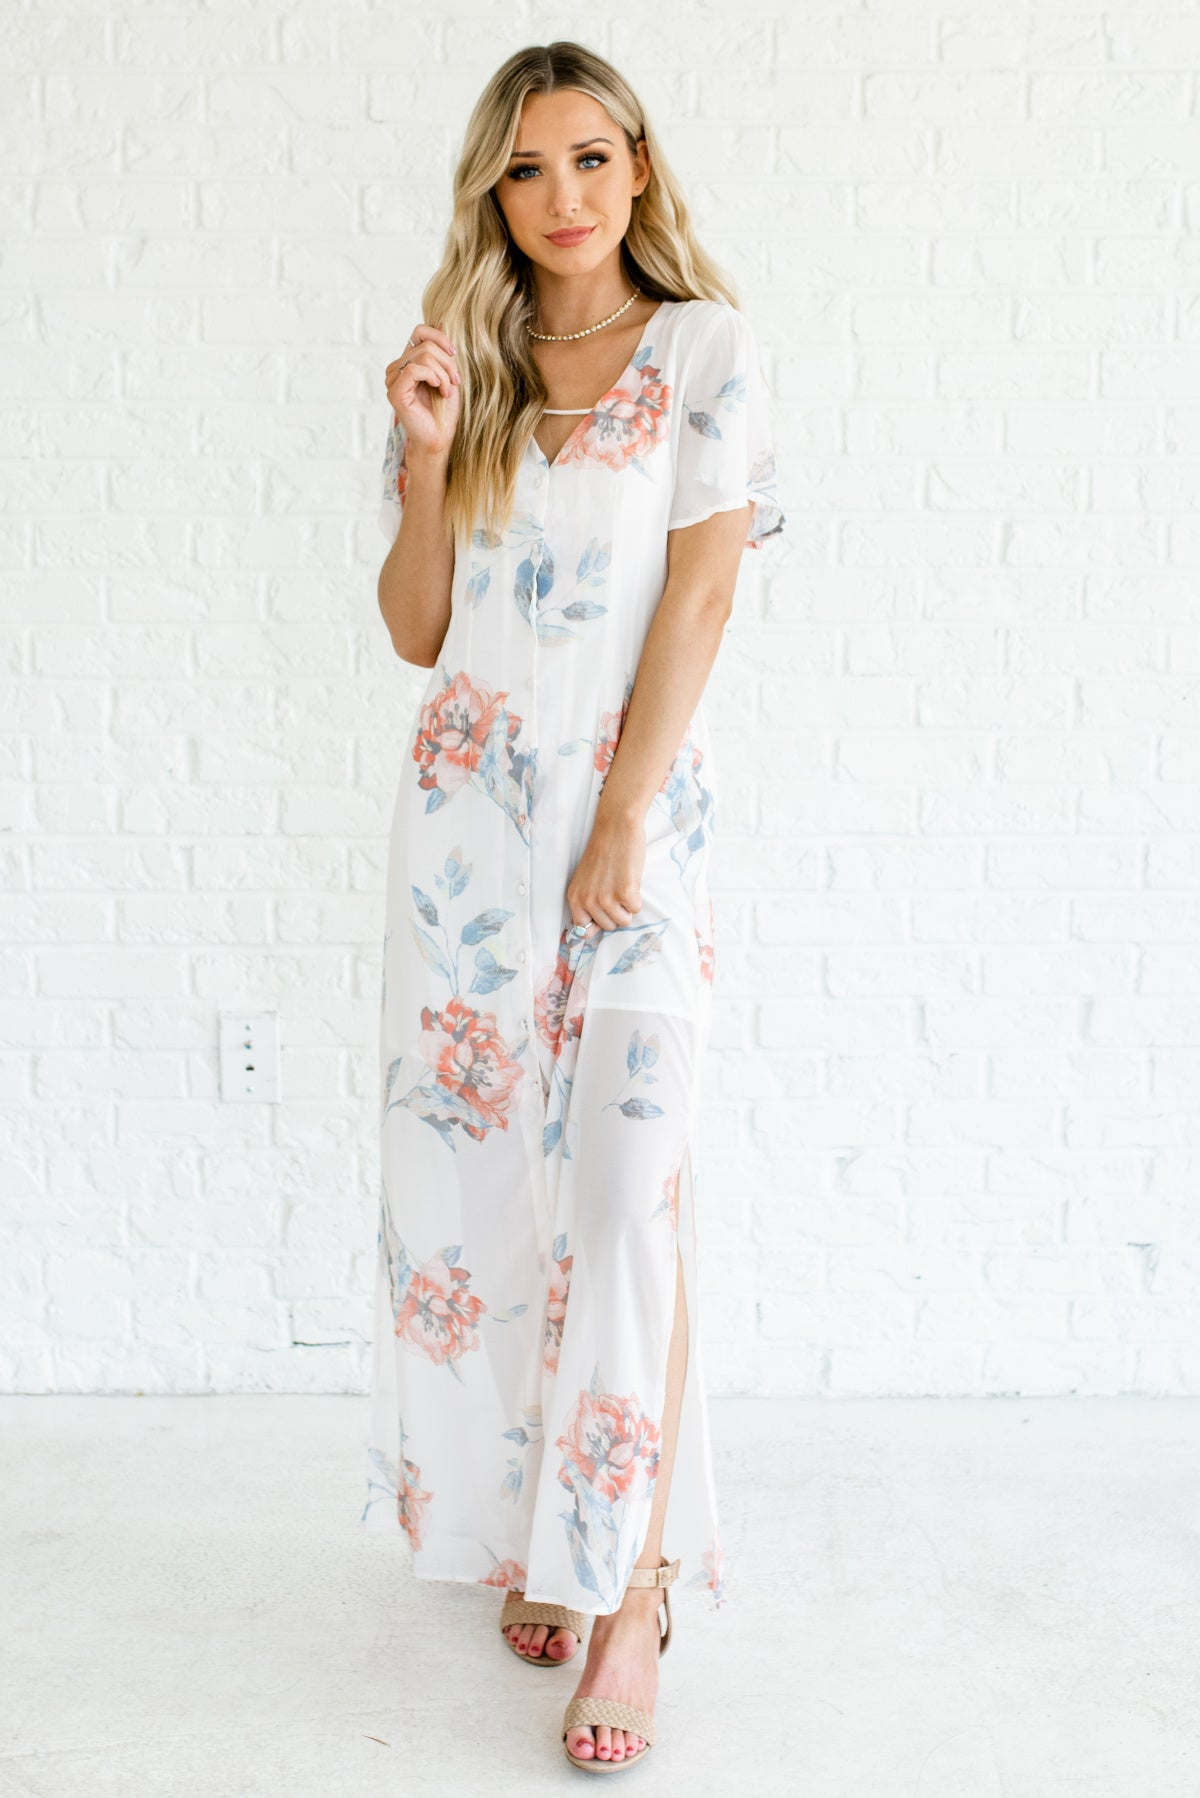 7ec6c5aa4a Peaceful Mornings White Floral Maxi Dress | Boutique Maxi Dress